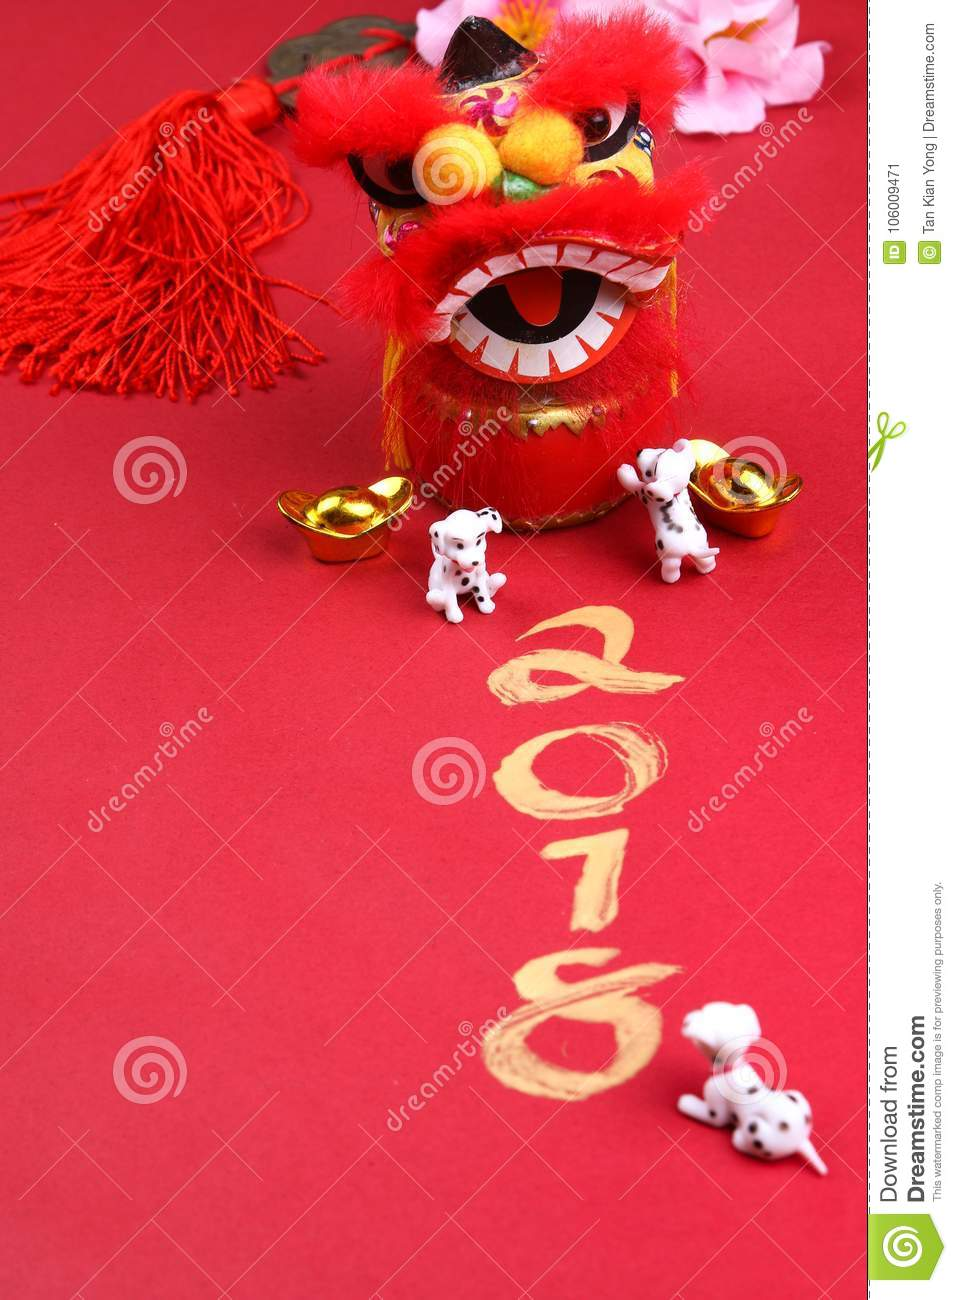 Miniature dogs with chinese new year decorations - Series 2